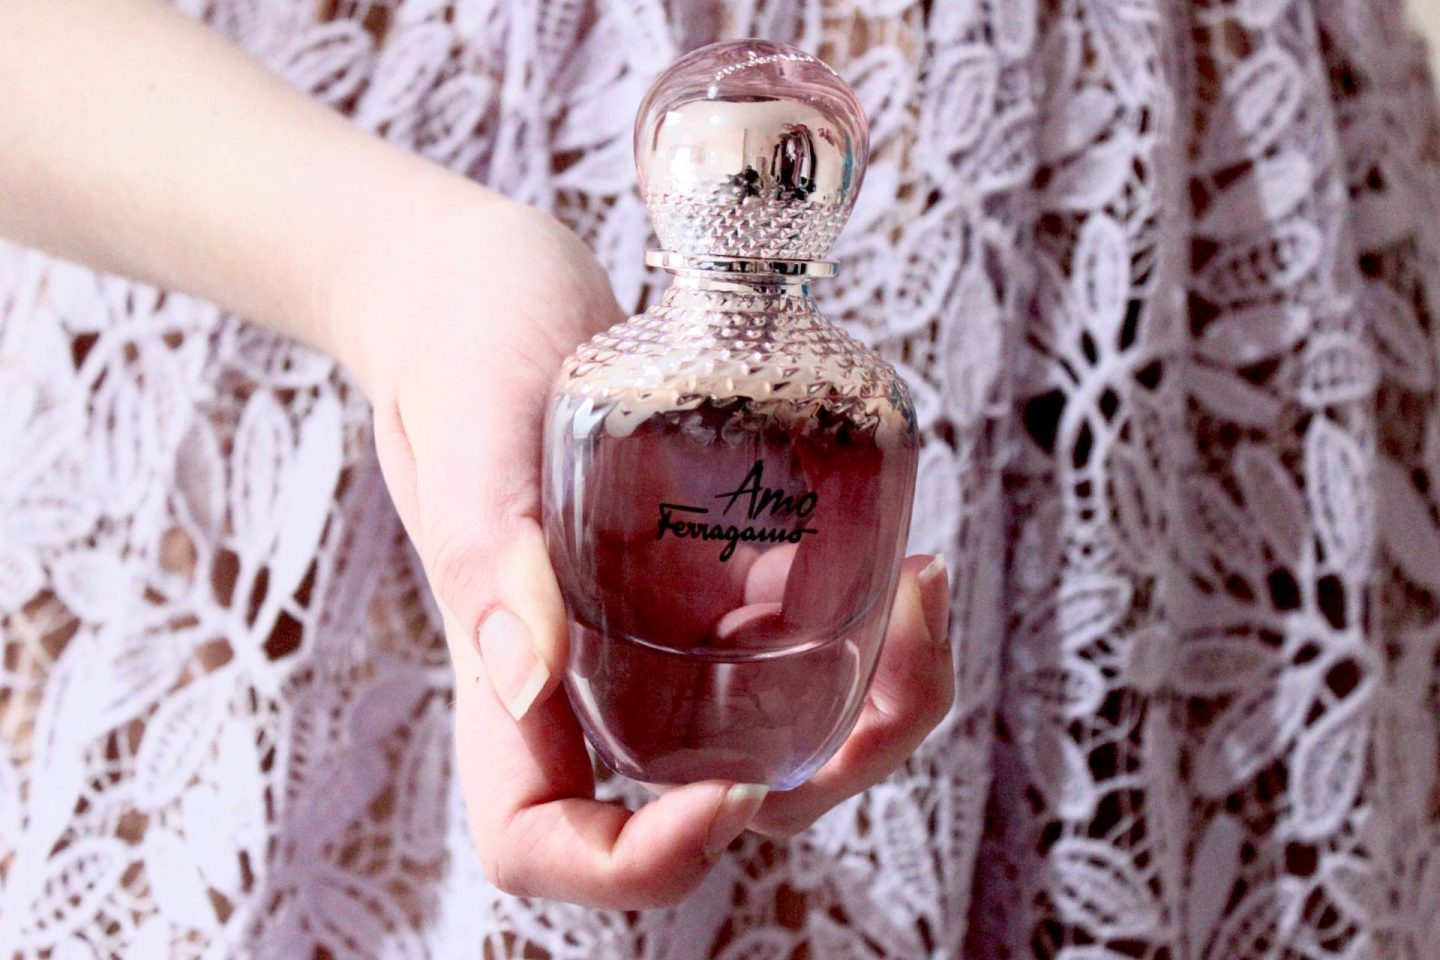 Amo Ferragamo metallic rose perfume bottle